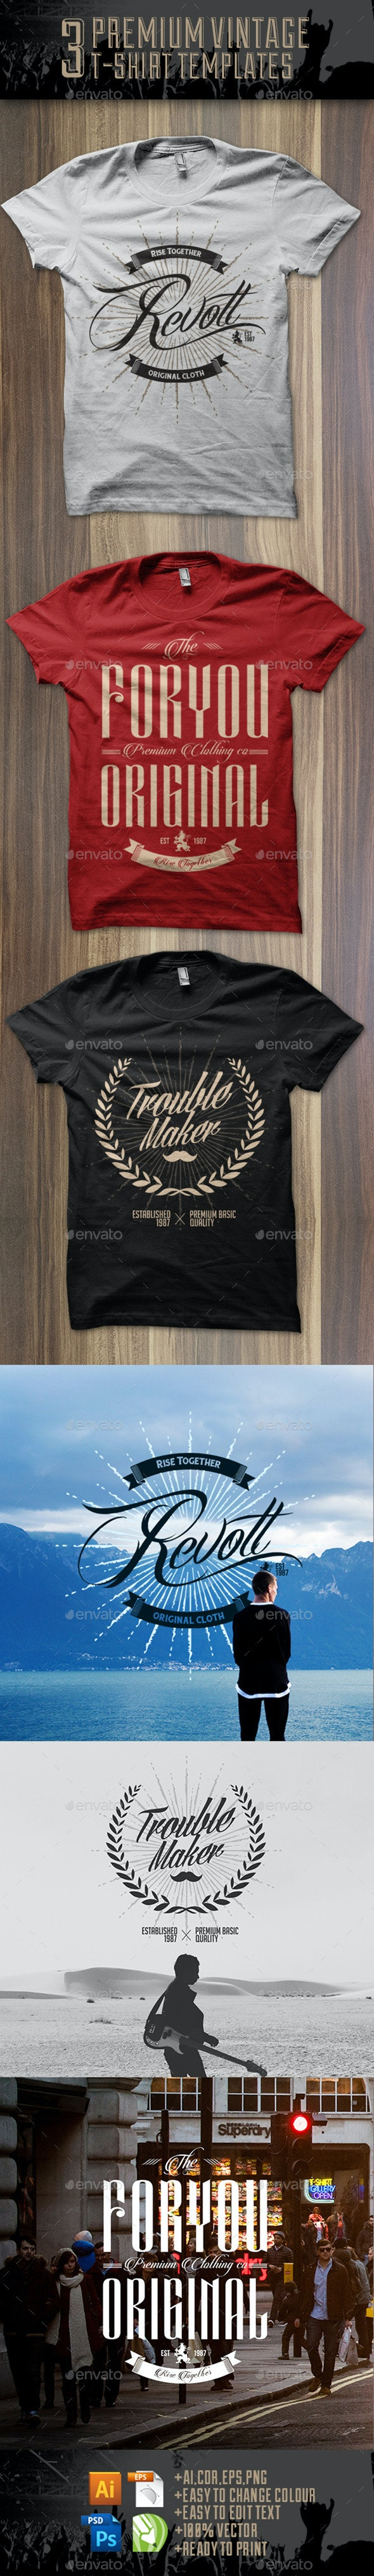 3 Premium T-Shirt Template - Grunge Designs